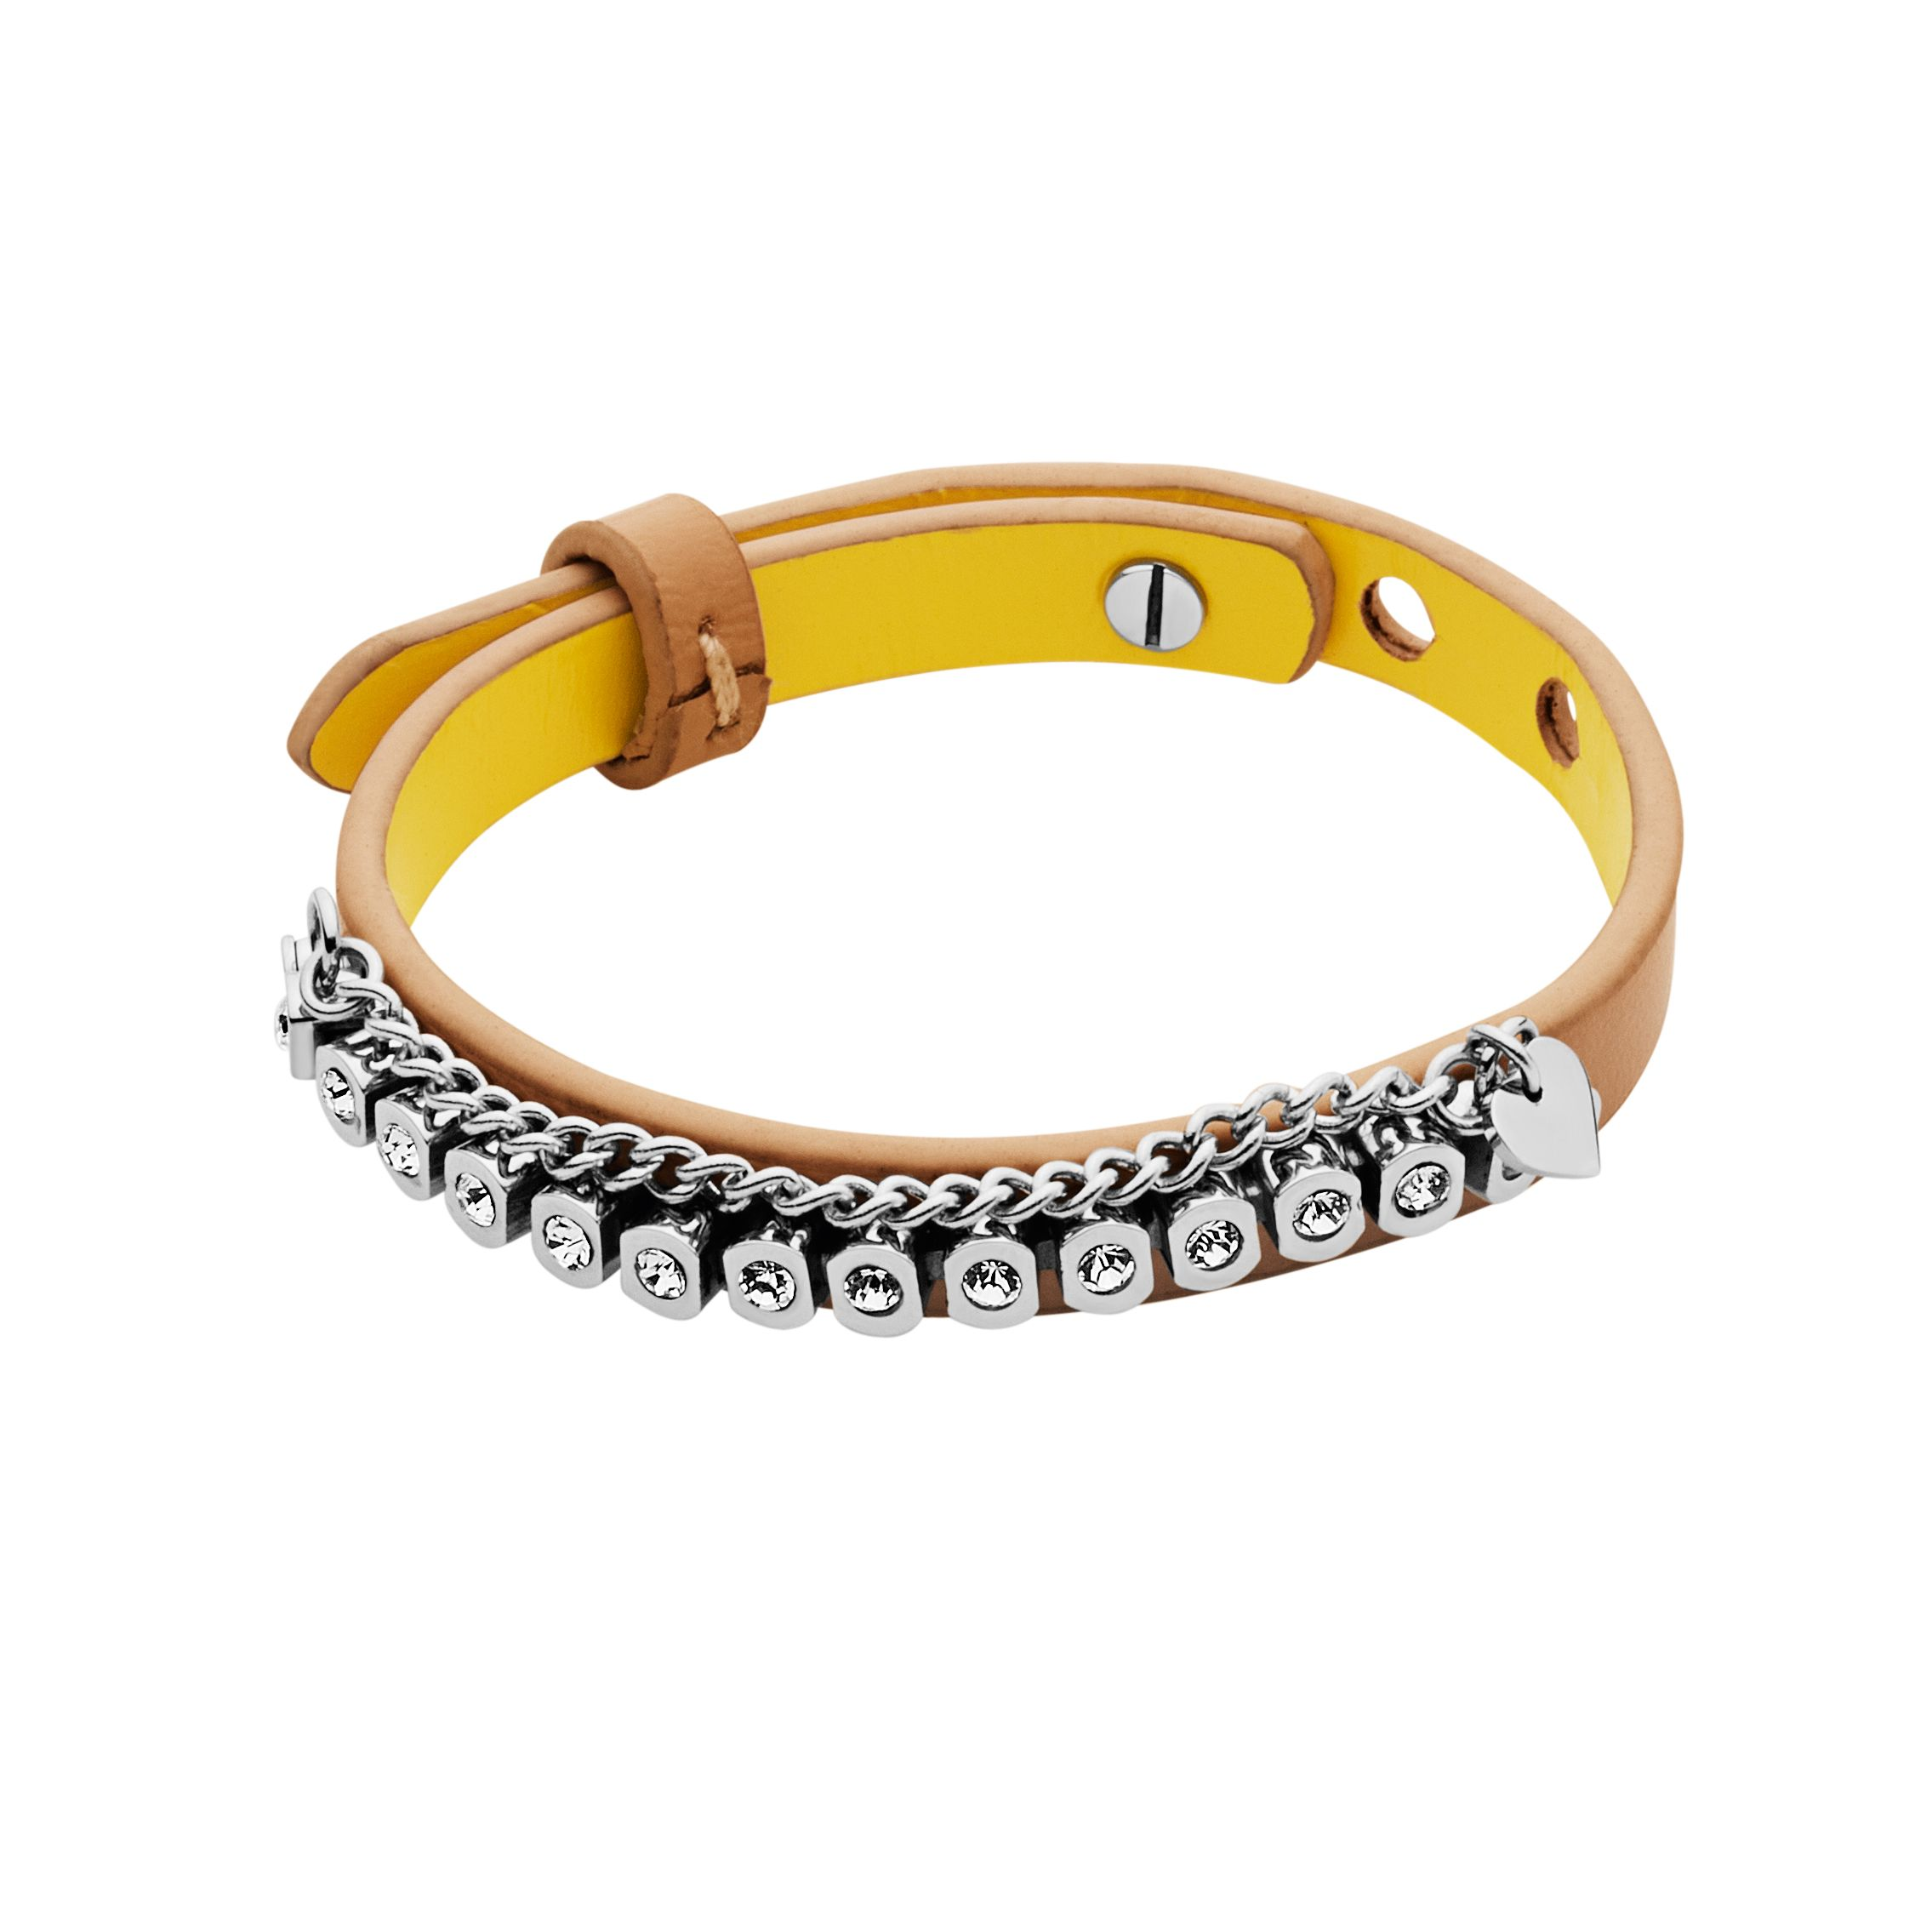 Titania sand leather bracelet